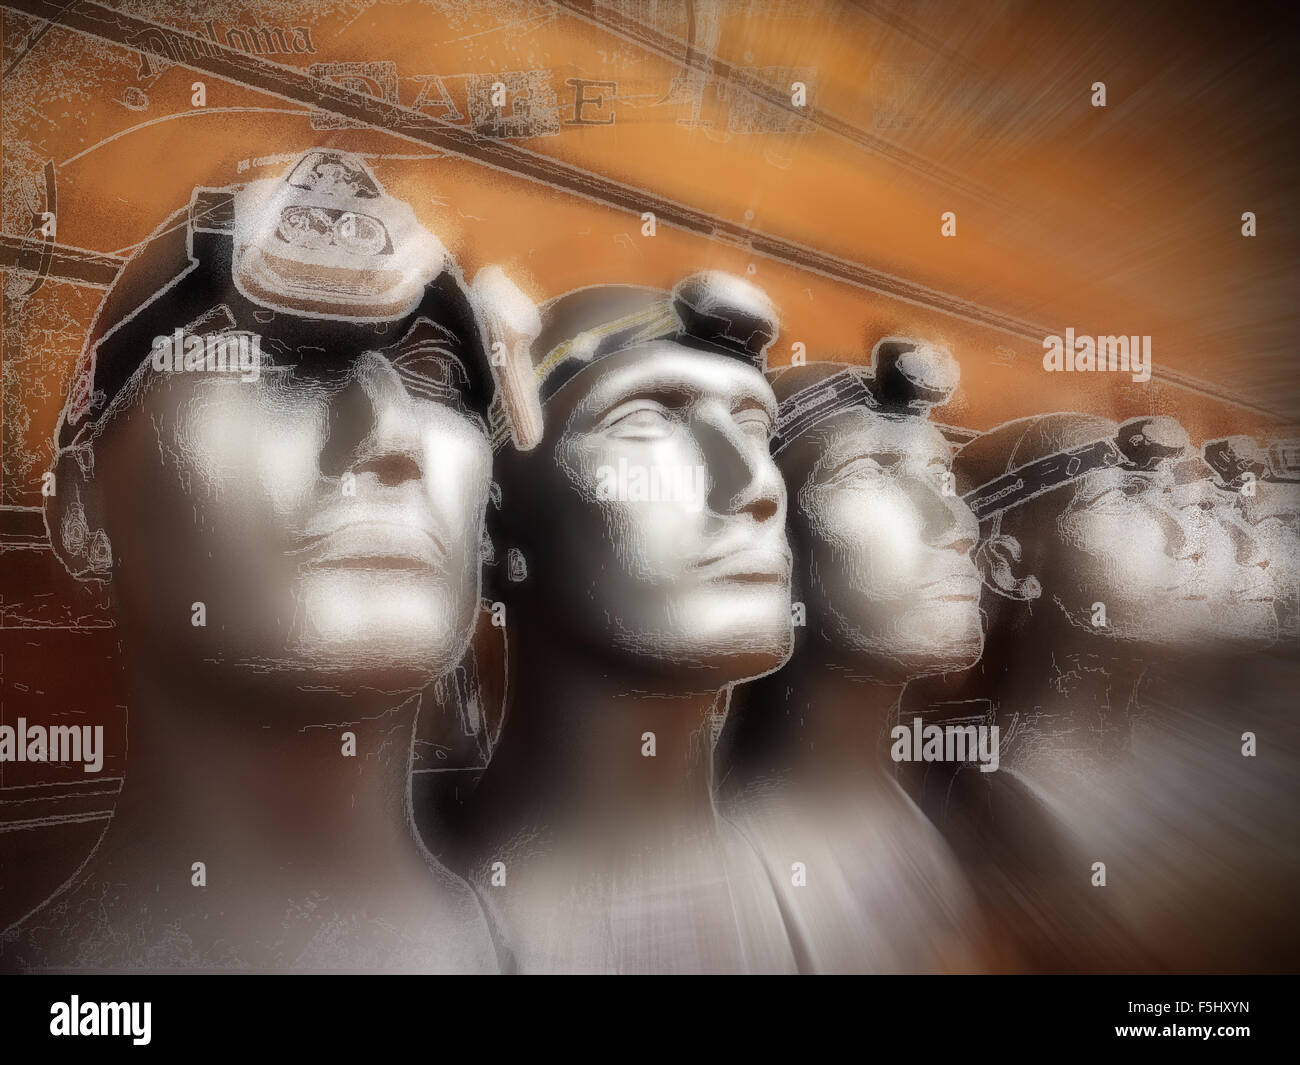 Dummies wearing headlamps, on display in an outdoor shop. Digital art and illustration. - Stock Image